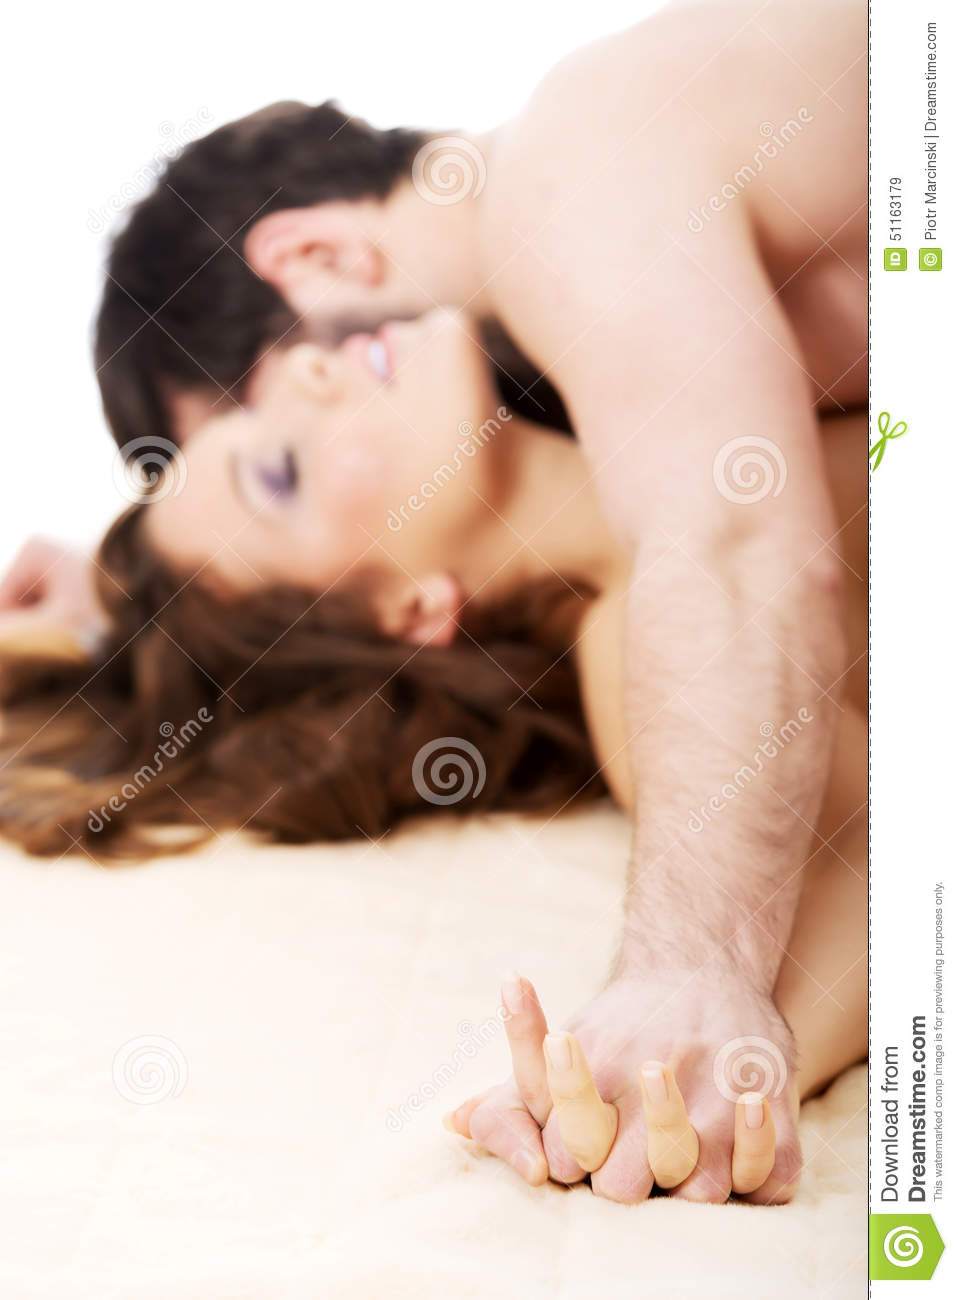 A woman and a man kissing in bed